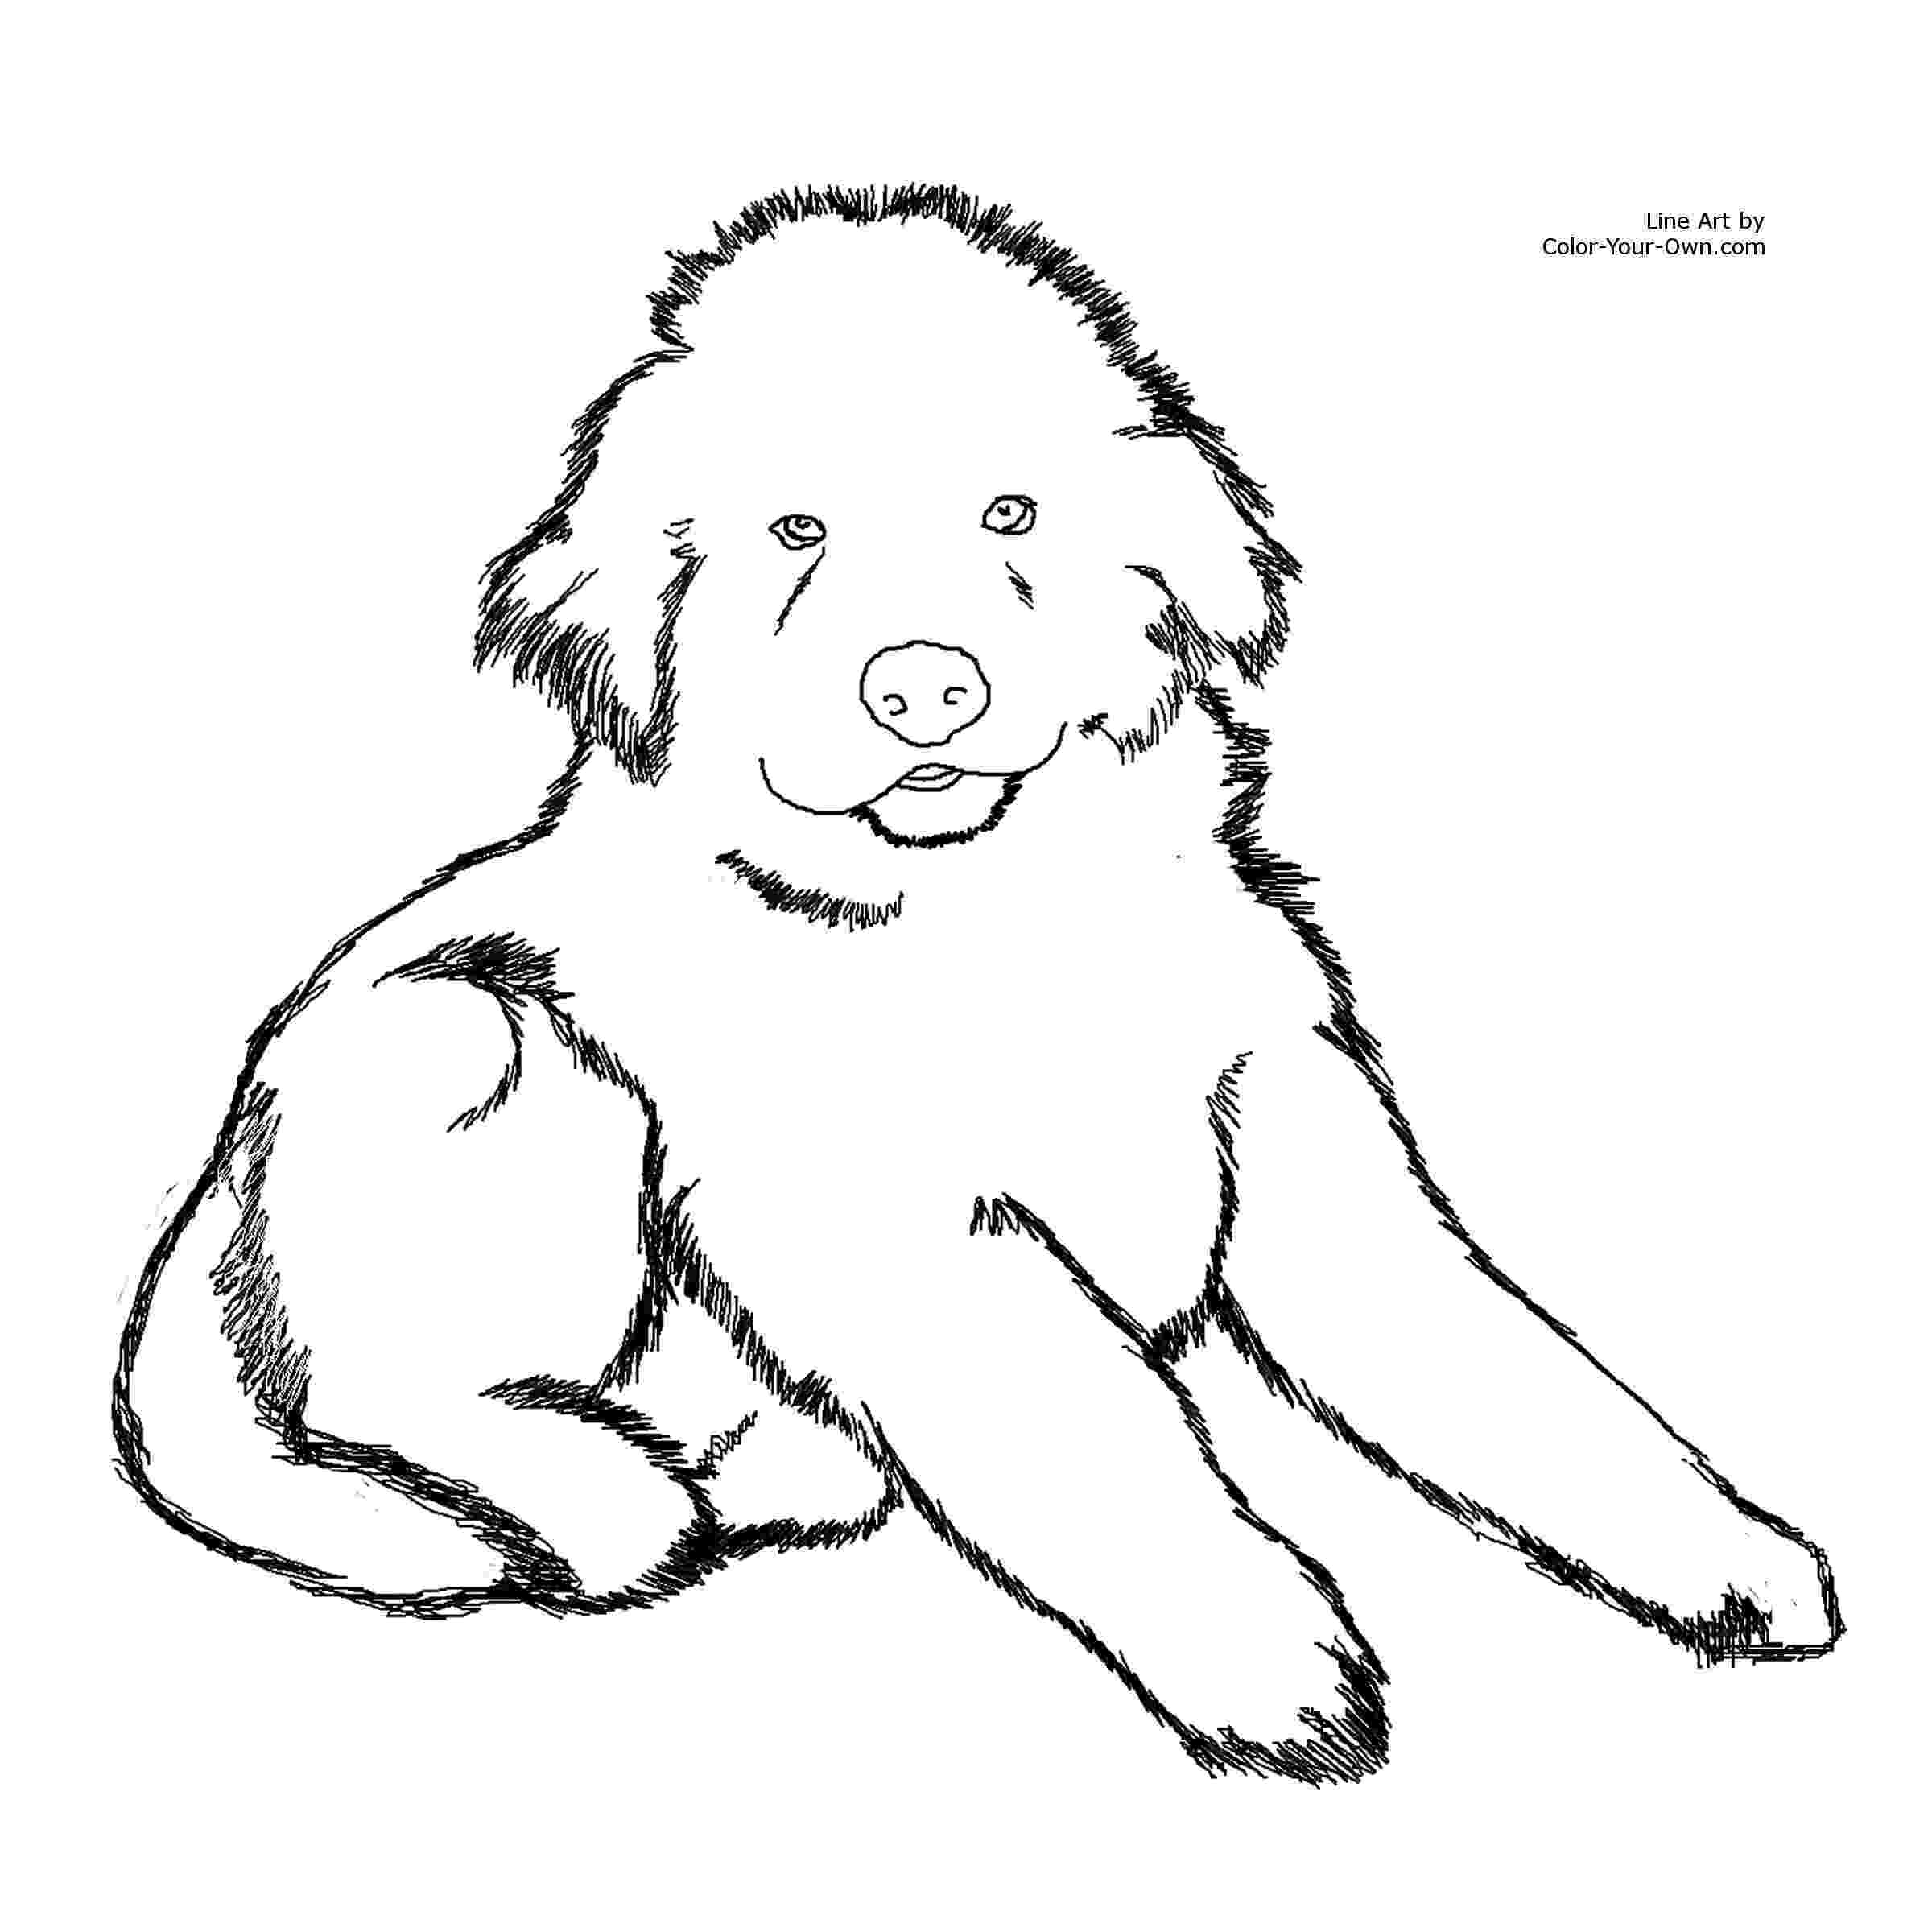 coloring pages 8 1 2 x 11 coloring pages 8 1 2 x 11 free download on clipartmag pages coloring 1 8 x 2 11